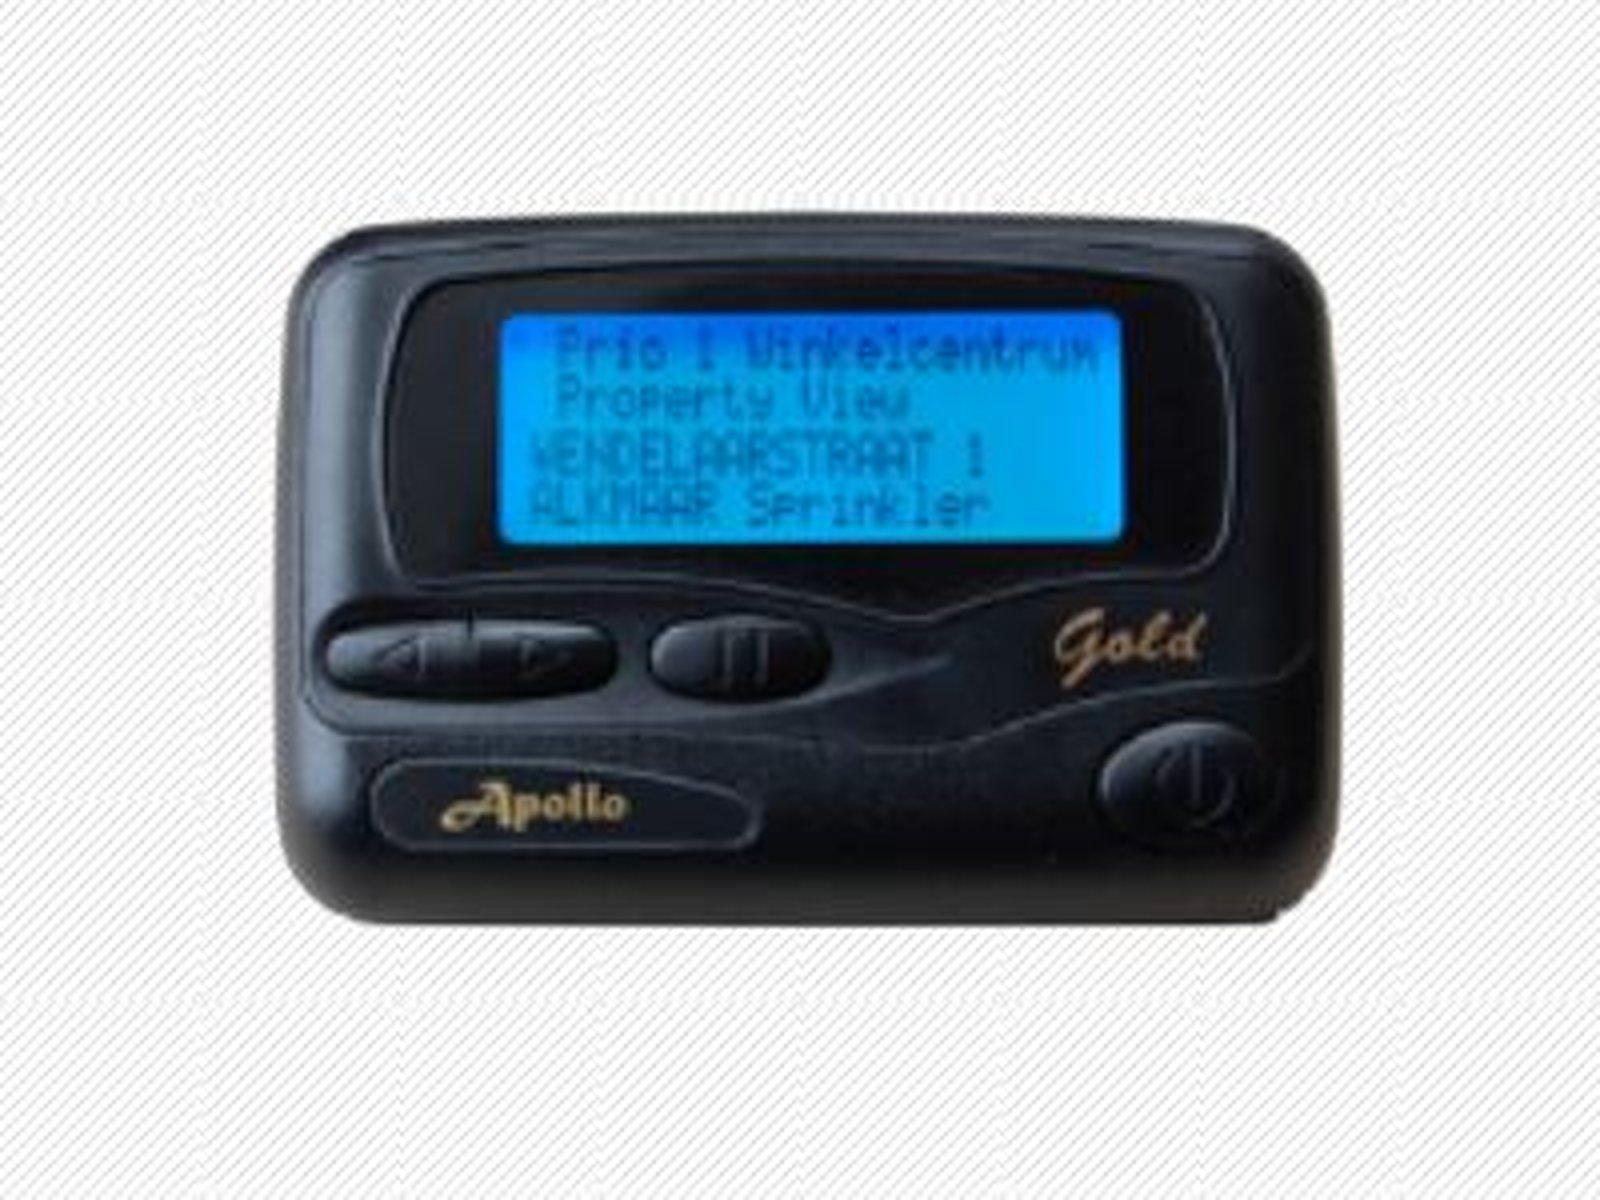 Digitalpager Apollo Gold